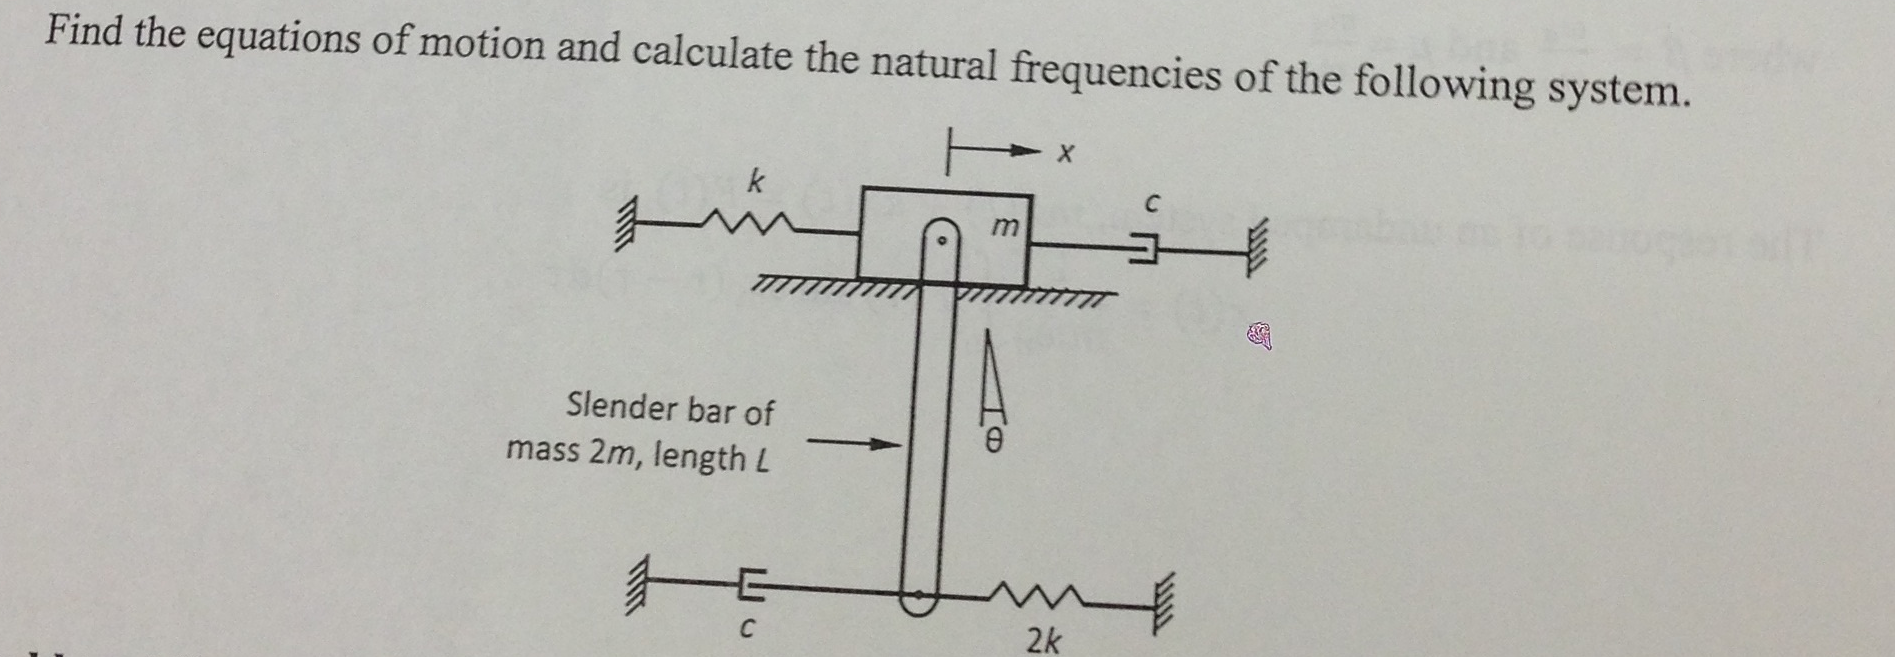 Find the equations of motion and calculate the nat